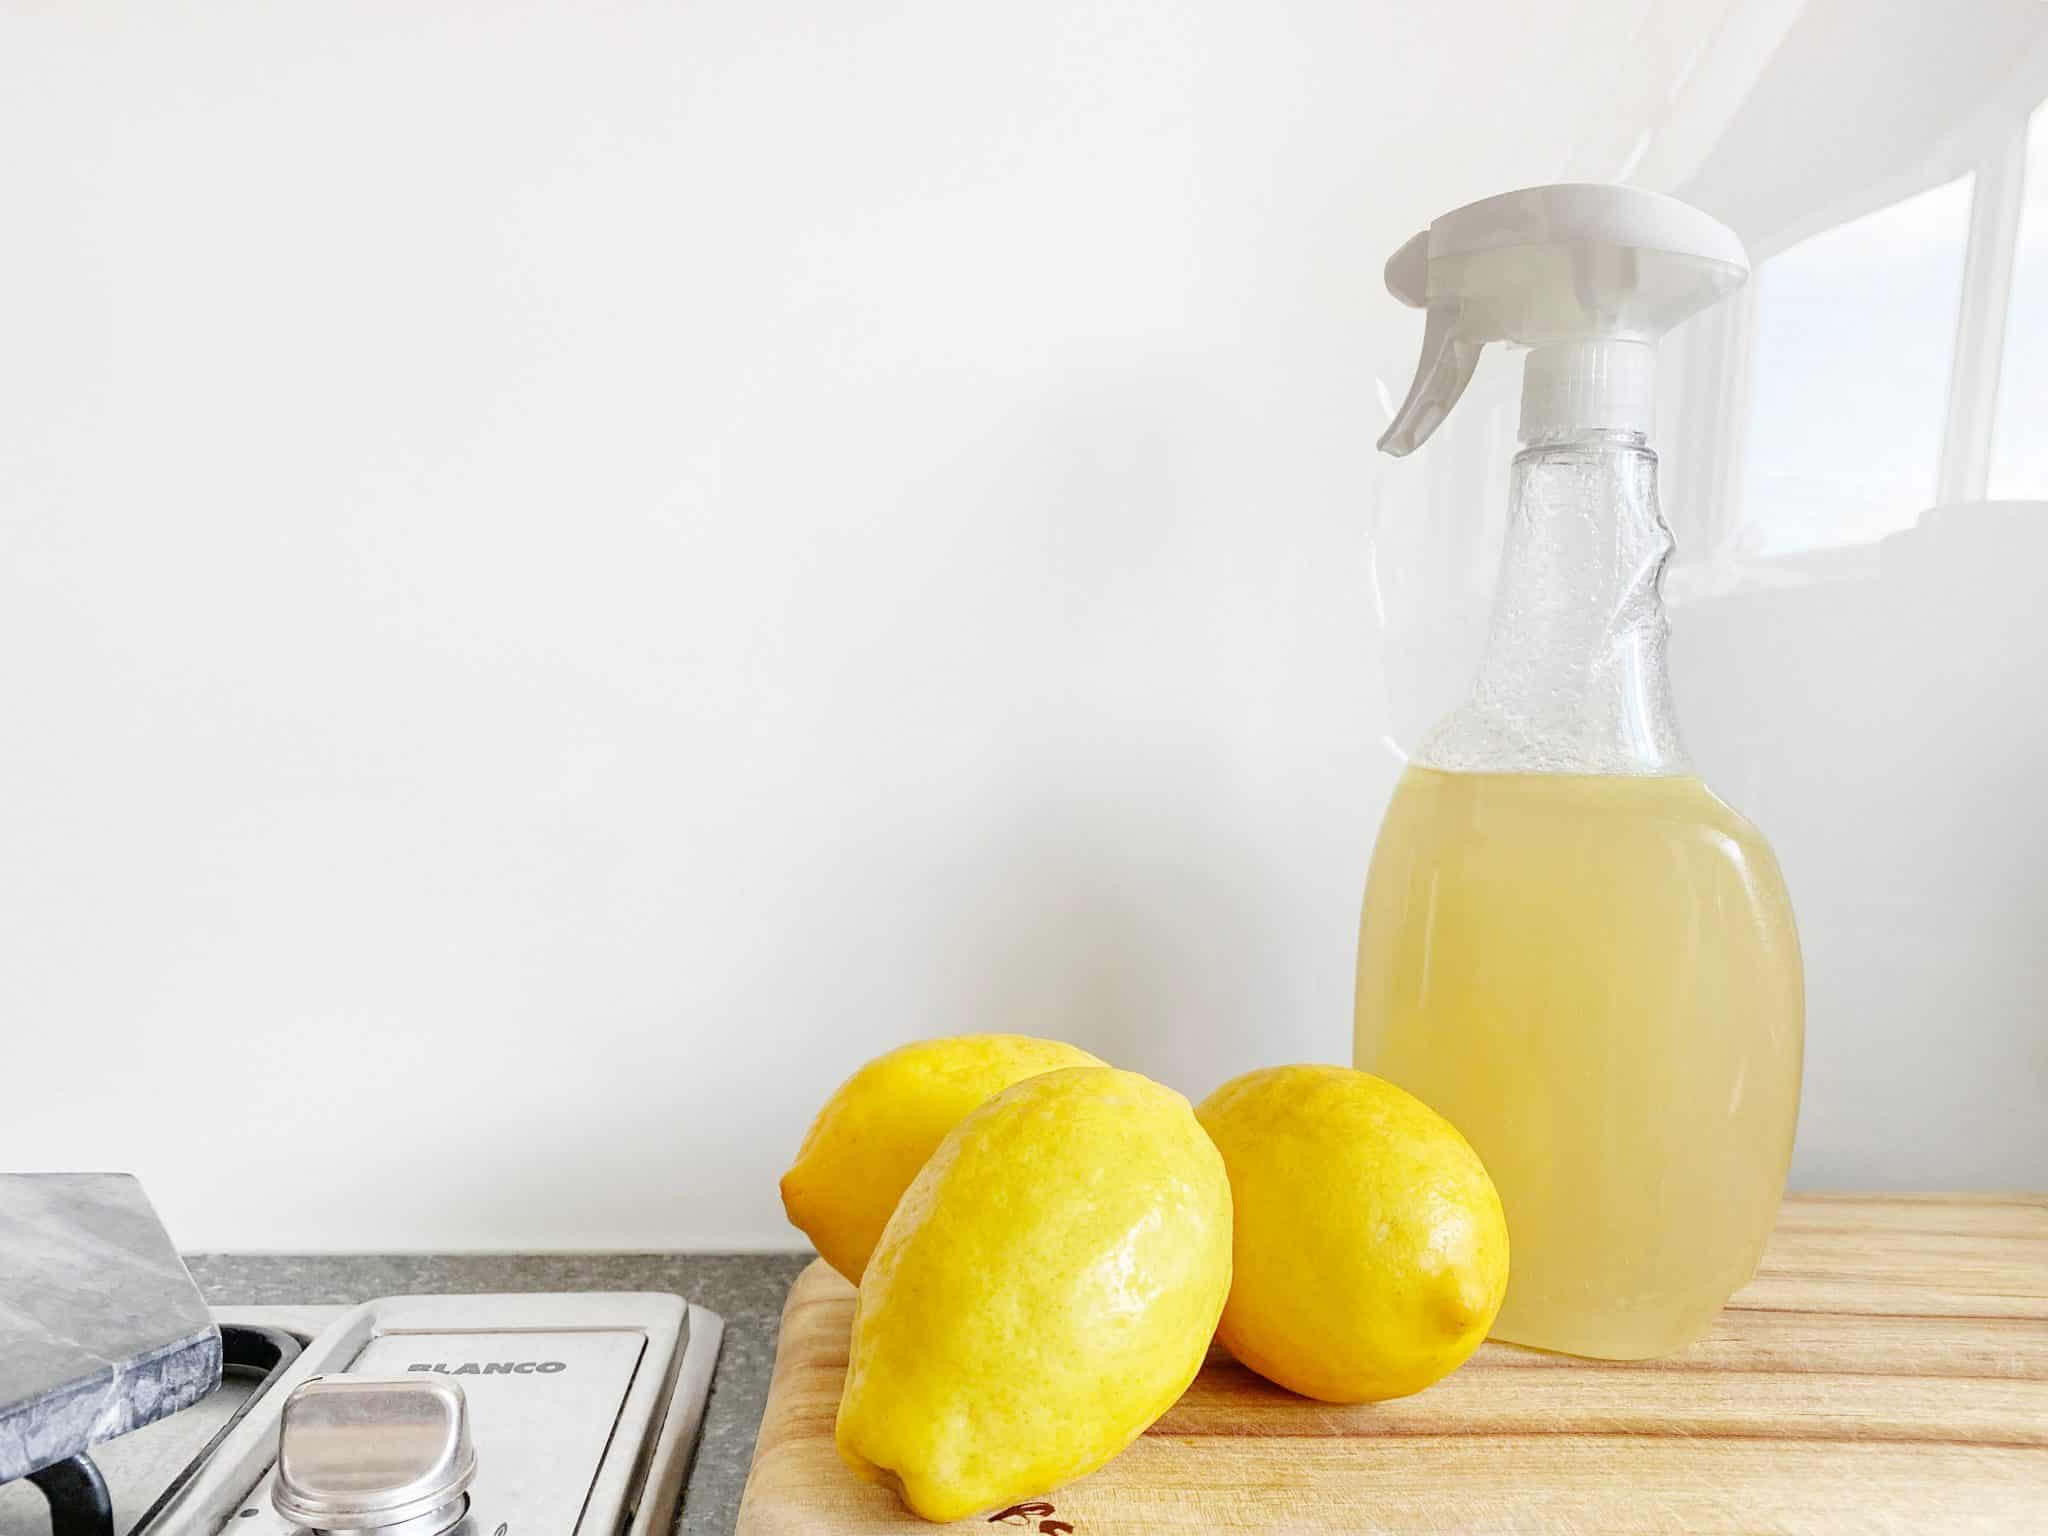 Cleaning Spray Bottle filled with lemon juice and lemons on a chopping board